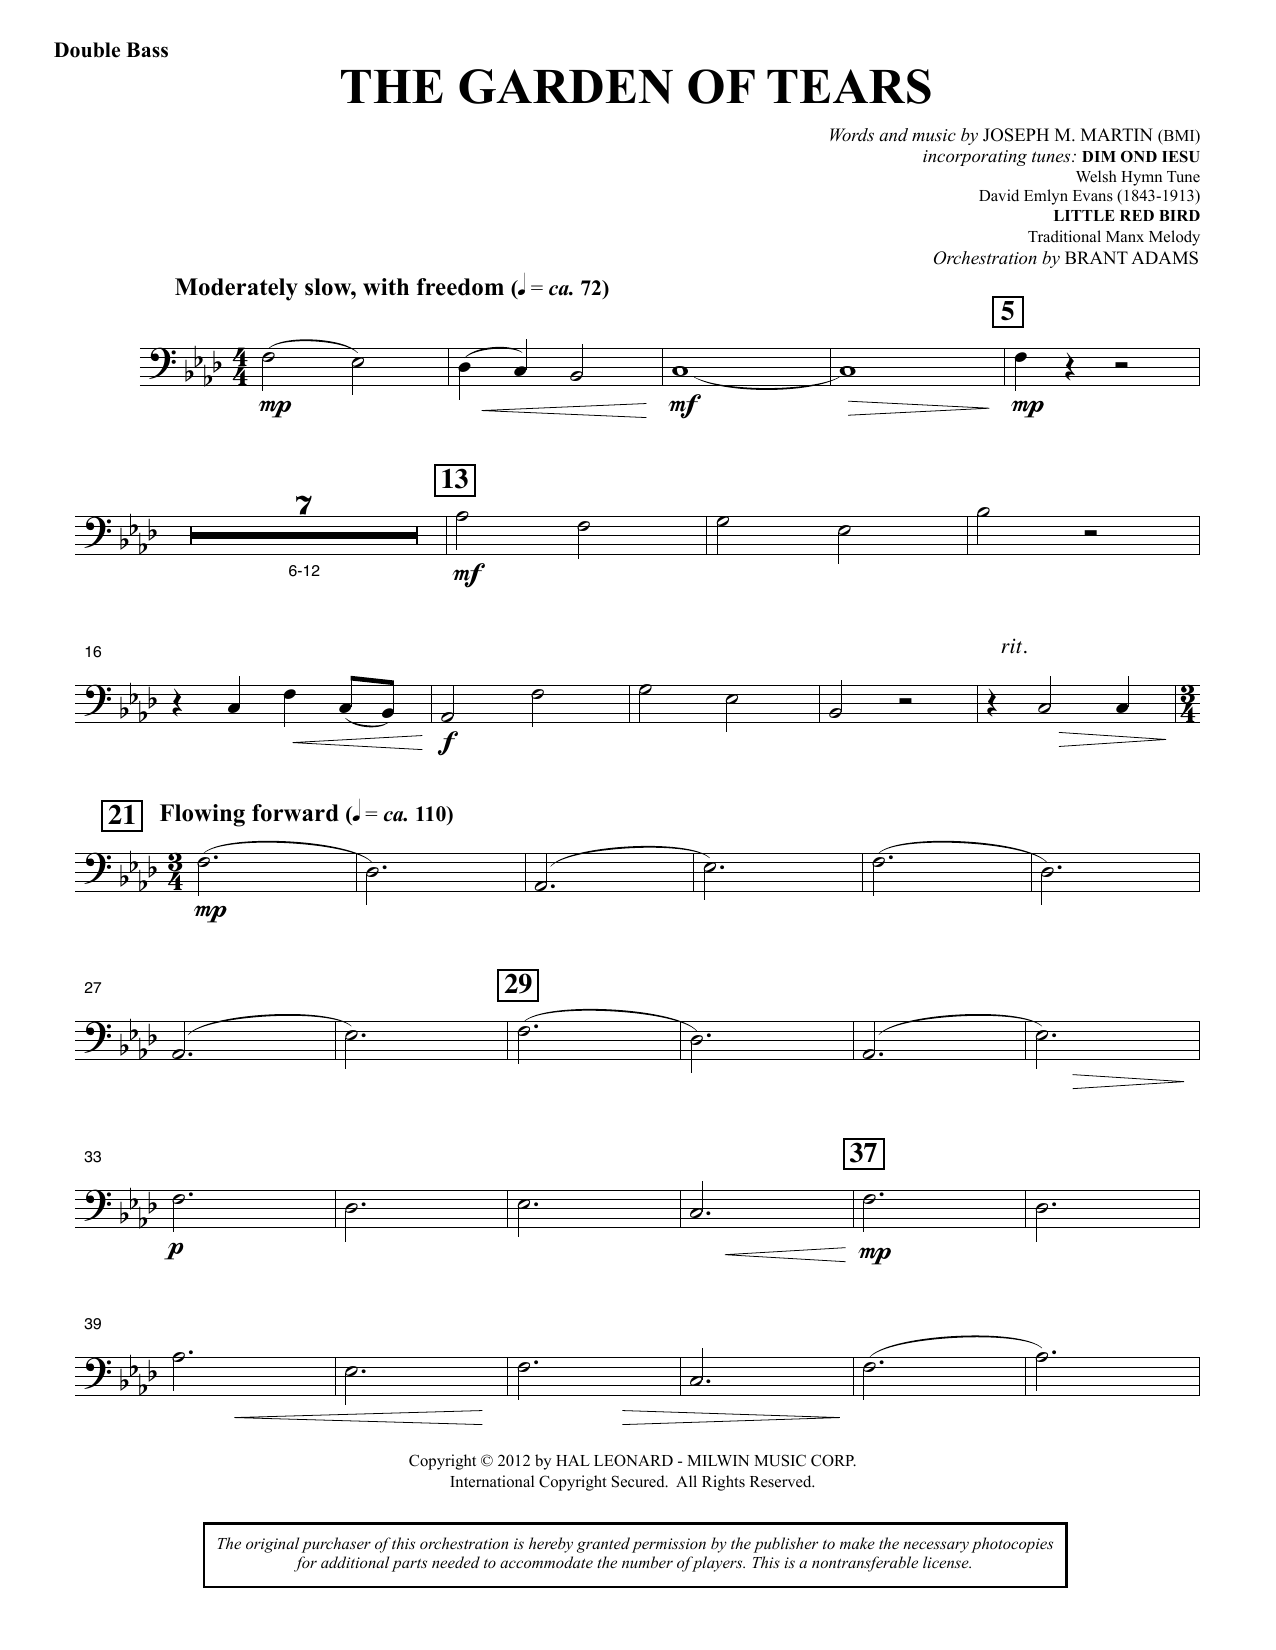 Joseph M. Martin The Garden of Tears - Double Bass sheet music notes and chords. Download Printable PDF.